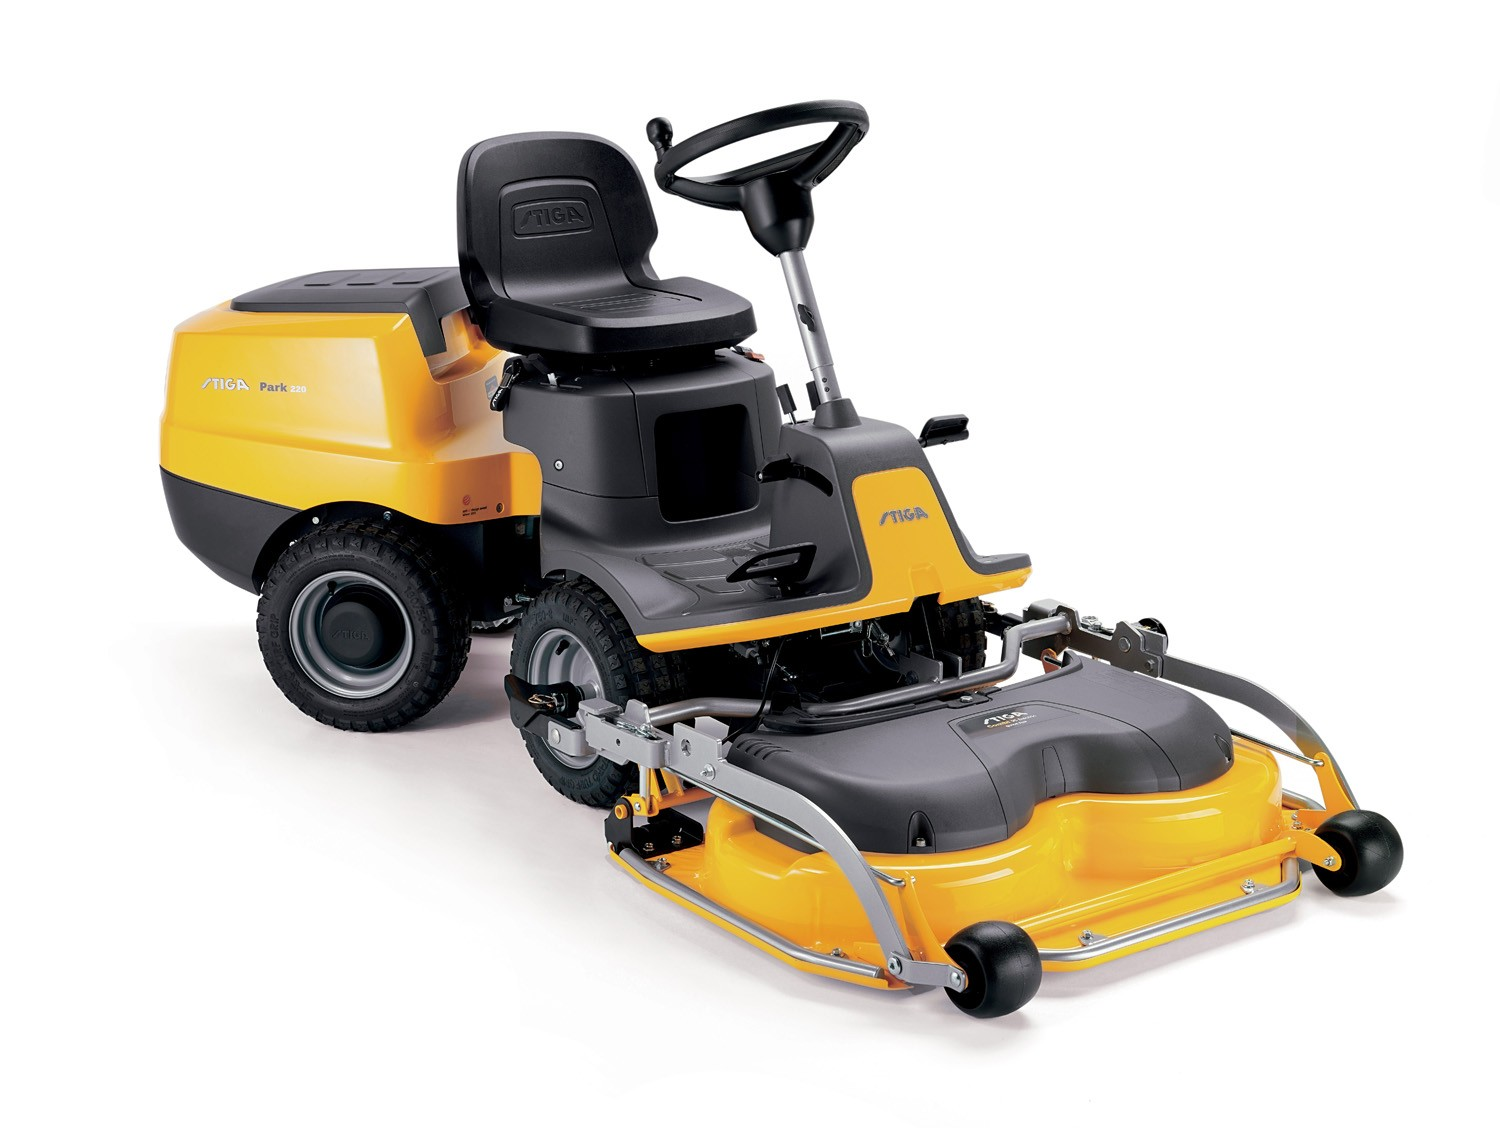 Stiga Park 220 2WD lawnmower complete with 95cm Cutting Deck